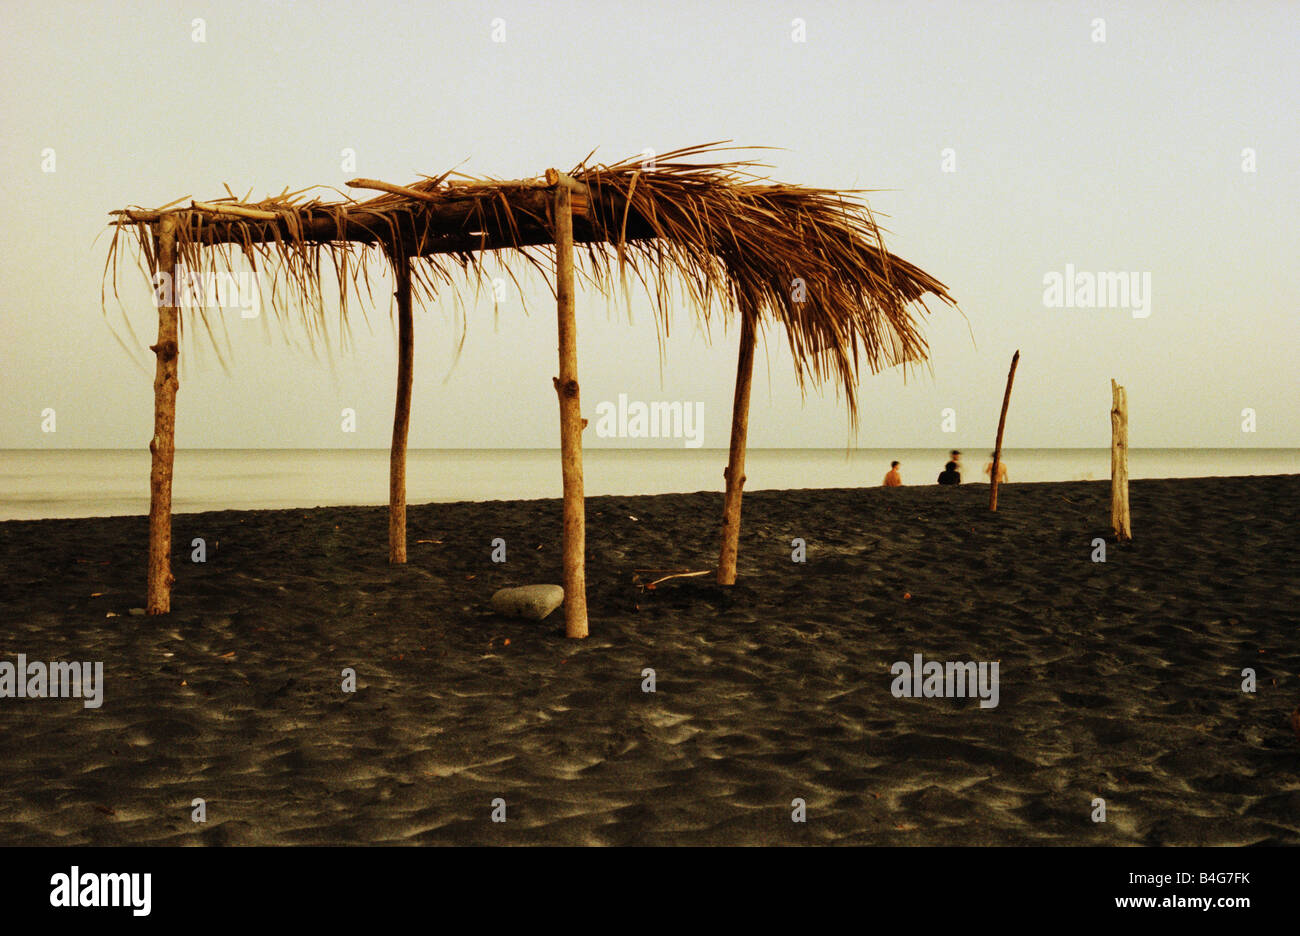 A Palapa shelter on a beach - Stock Image